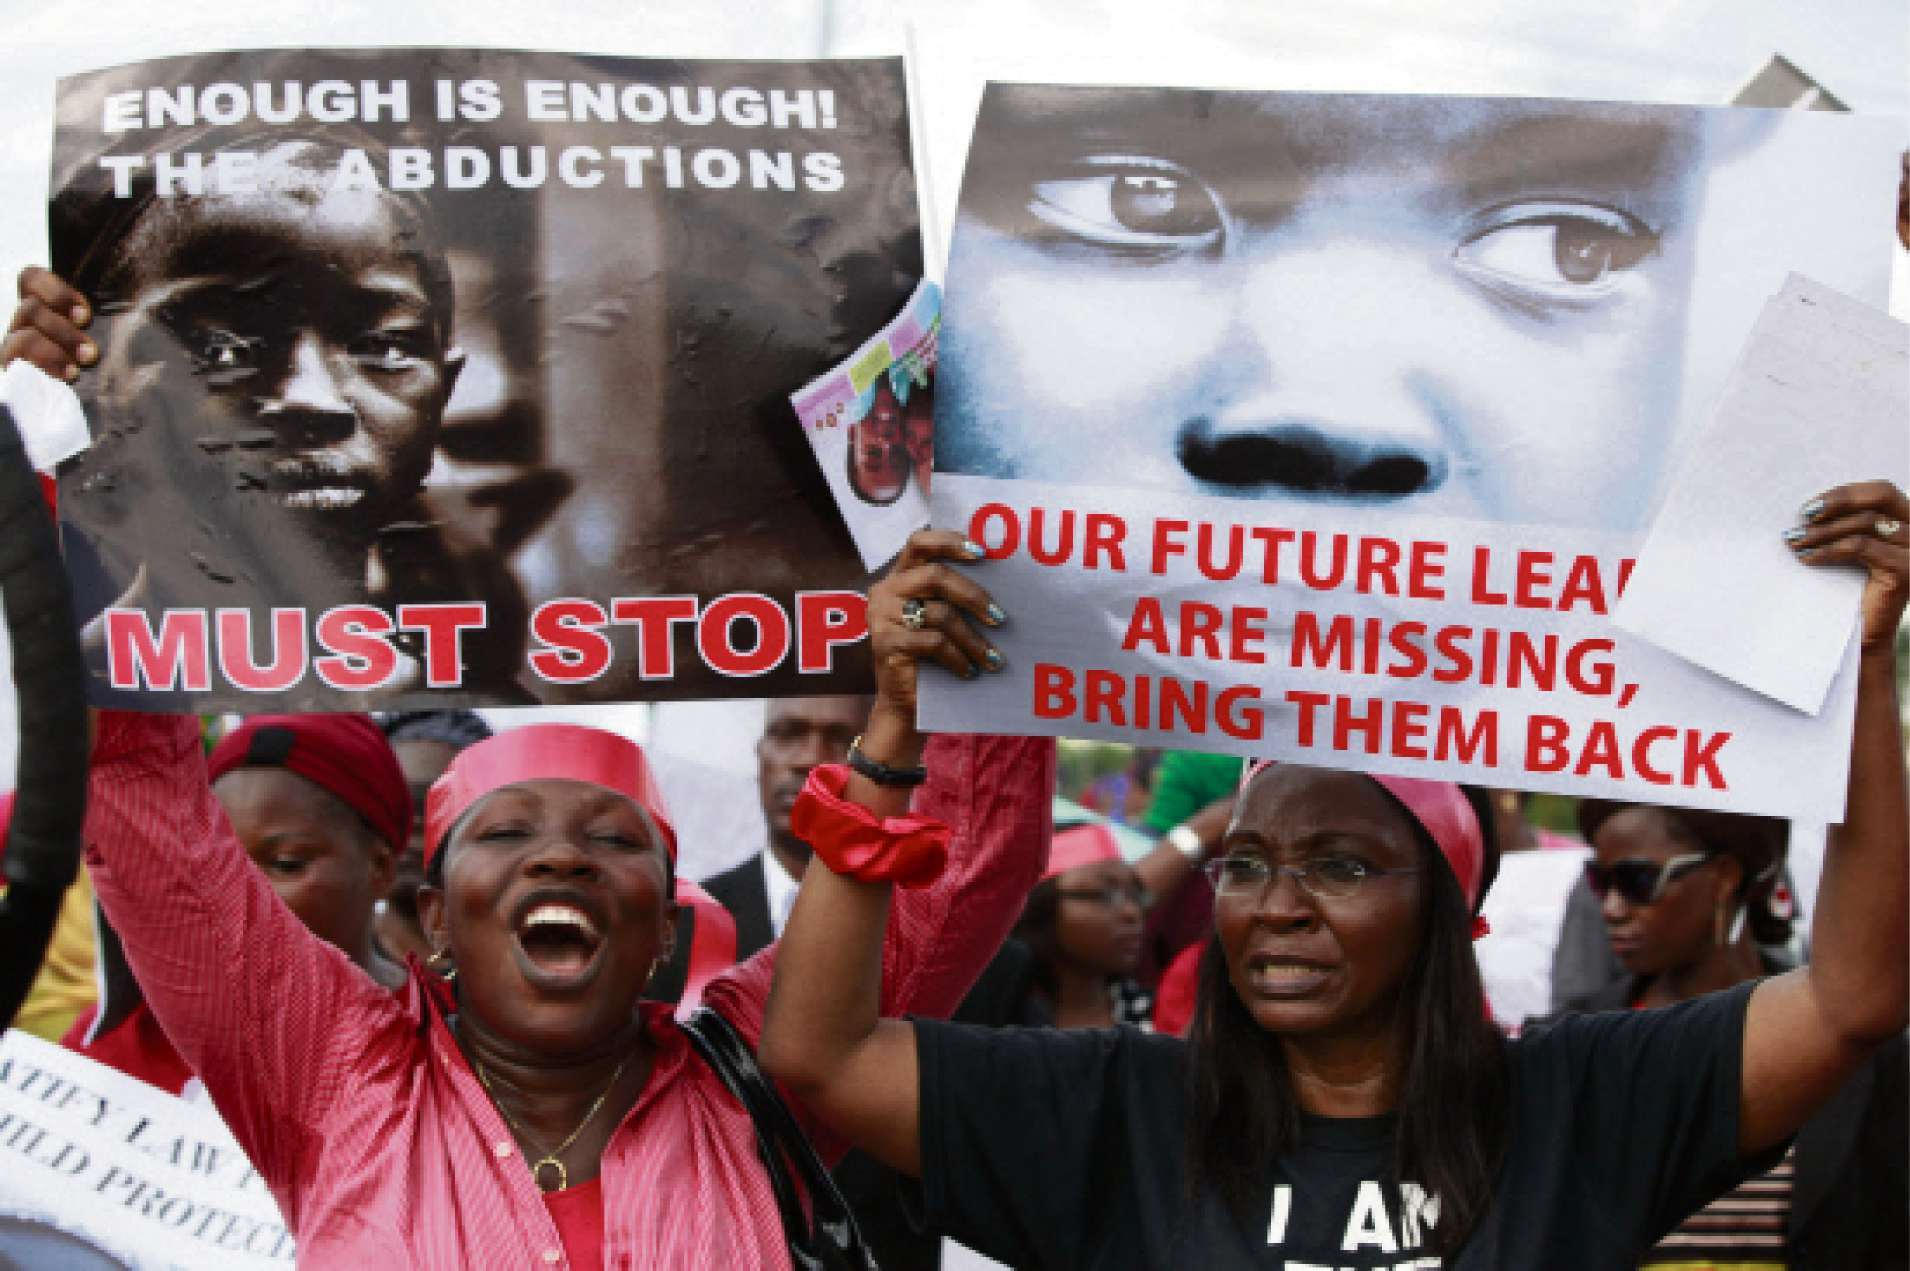 Women attend a demonstration calling on the Government to rescue schoolgirls kidnapped from a boarding school in Chibok, in Lagos, Nigeria on April 14.